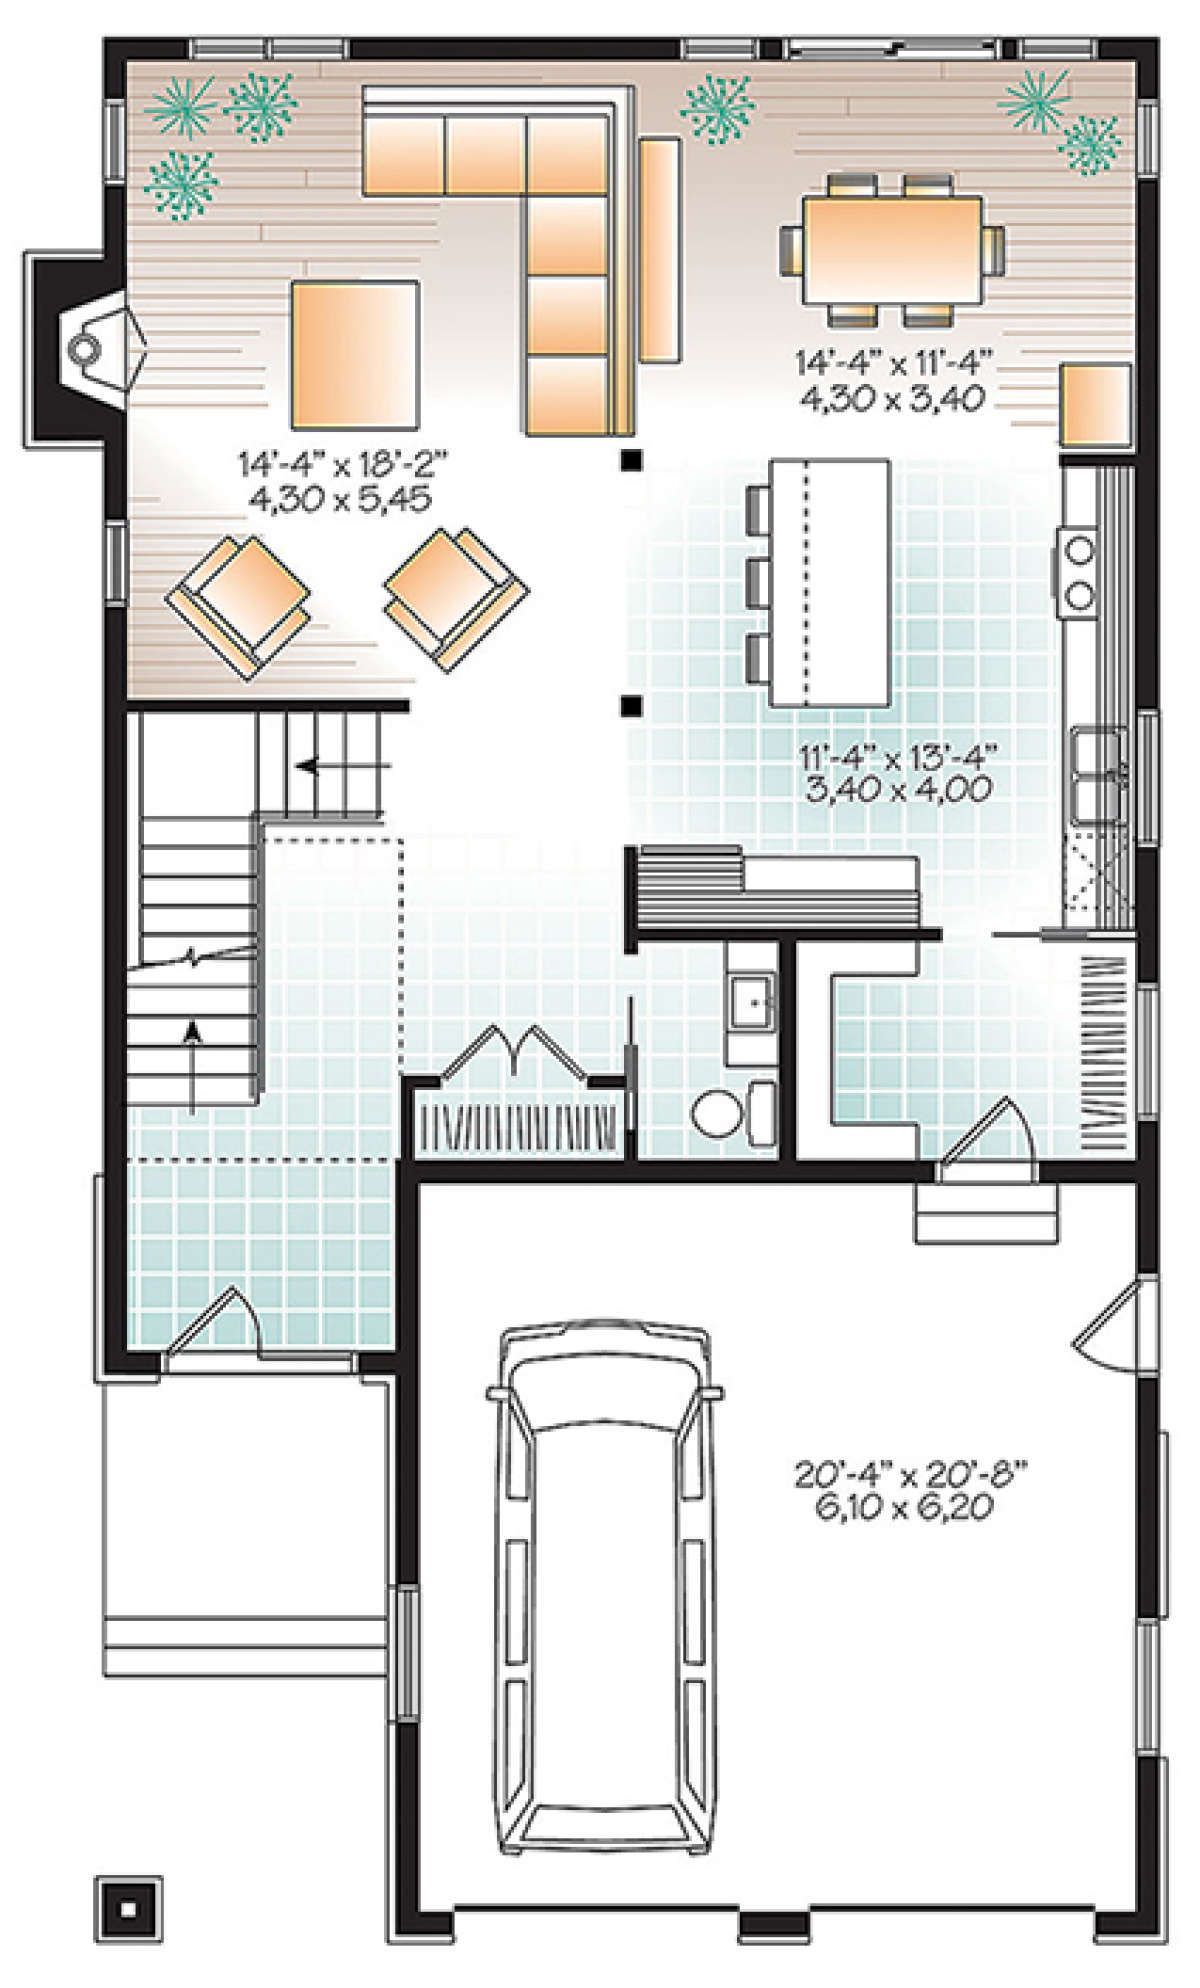 House Plan 034 01078 Contemporary Plan 2 288 Square Feet 3 Bedrooms 2 5 Bathrooms Contemporary House Plans House Plans Four Bedroom House Plans